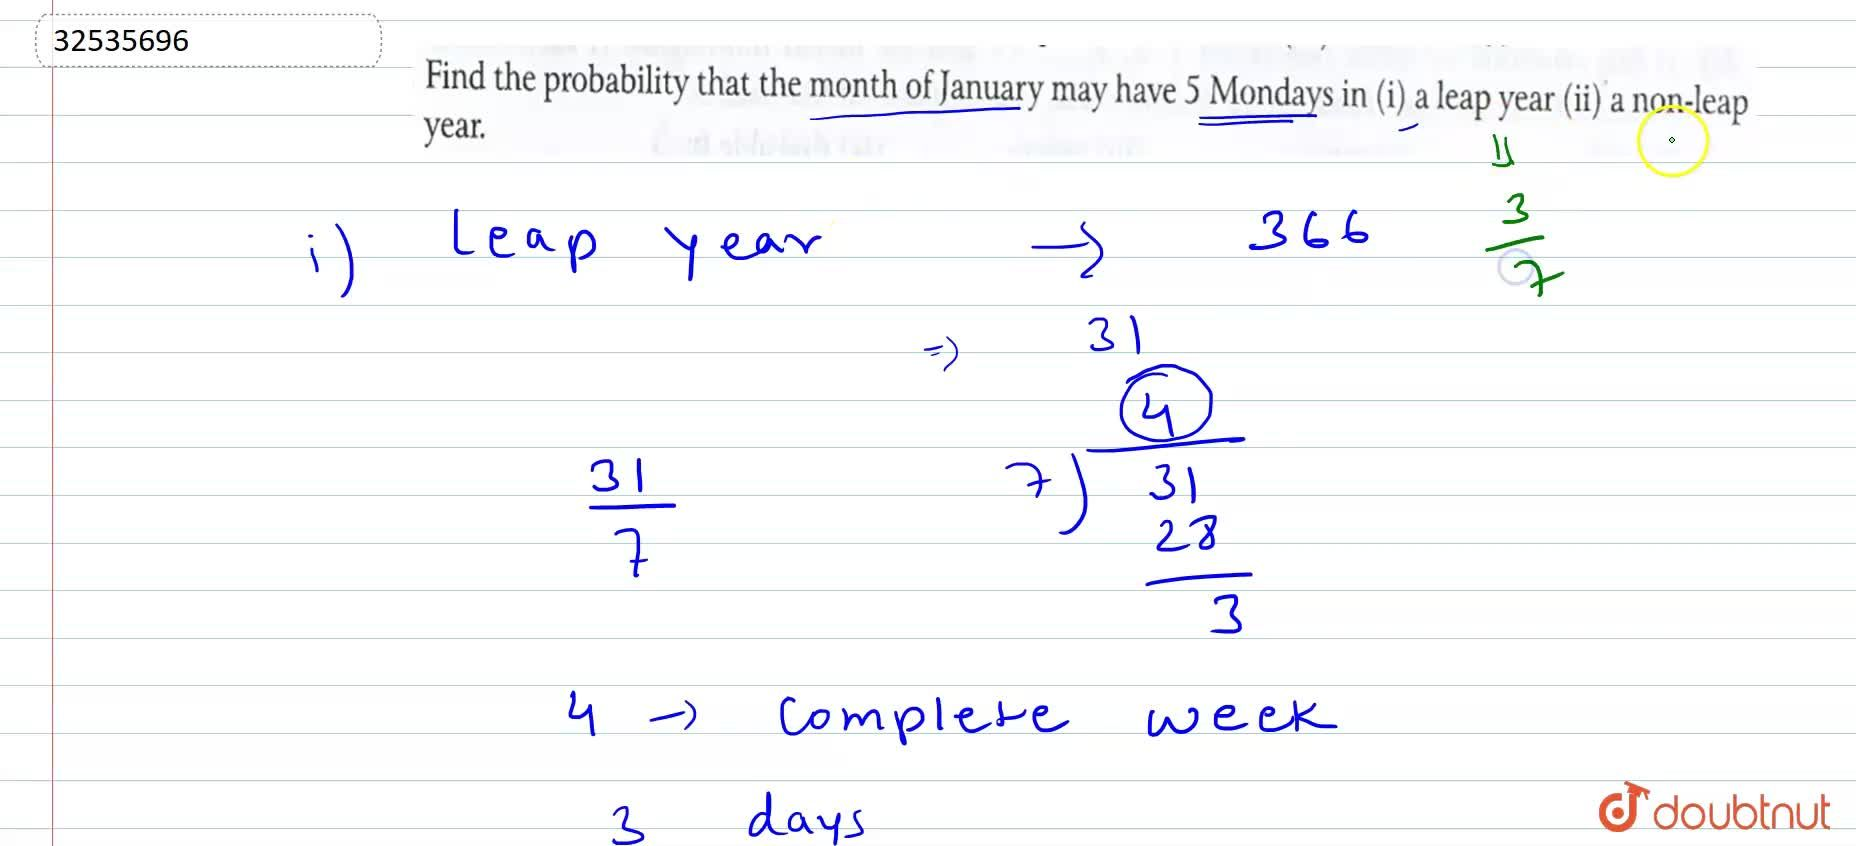 Solution for Find the probability that the month of January may